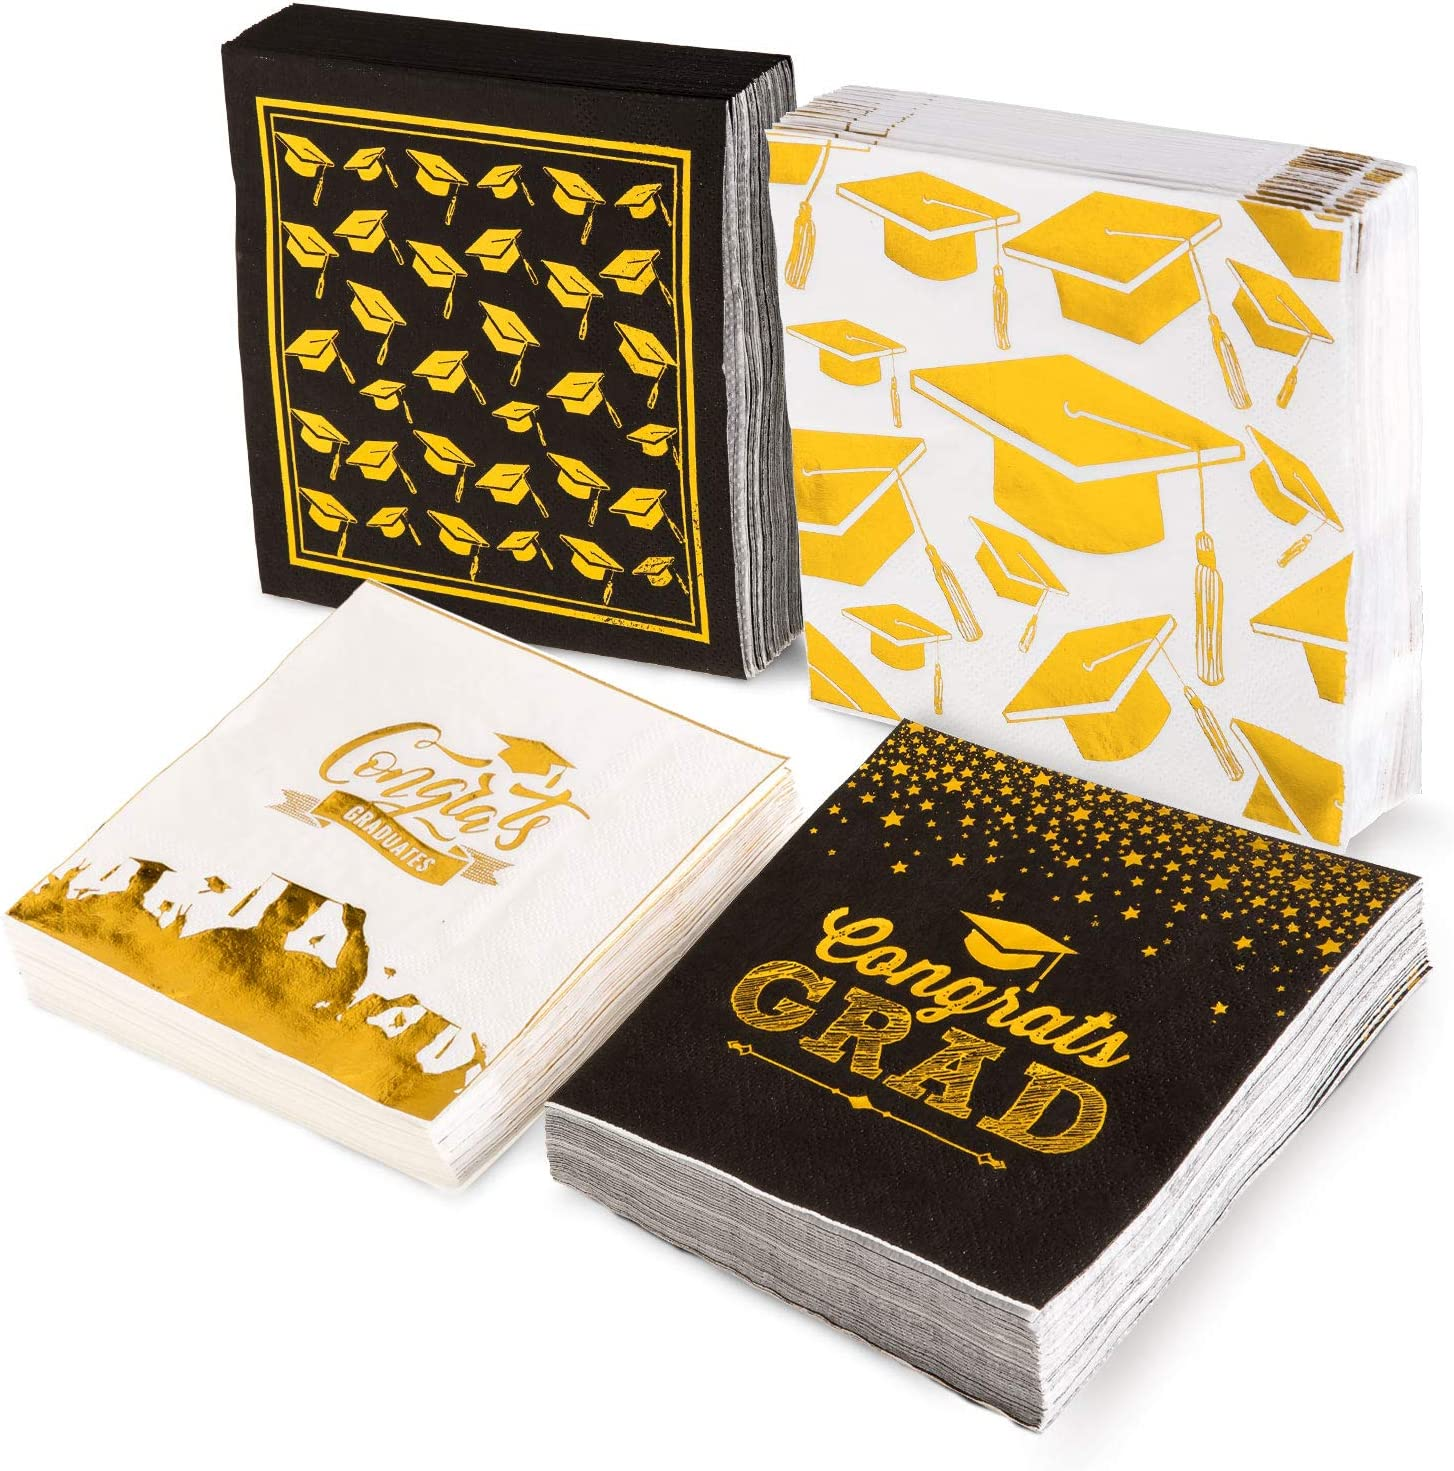 Whaline 120 Sheet Graduation Party Napkins, Gold Foil Printed Disposable Cocktail Napkins, Congrats Grad Paper Napkins for Grad Dinner Tea Party Supplies, Black and White, Folded 5 x 5 Inches